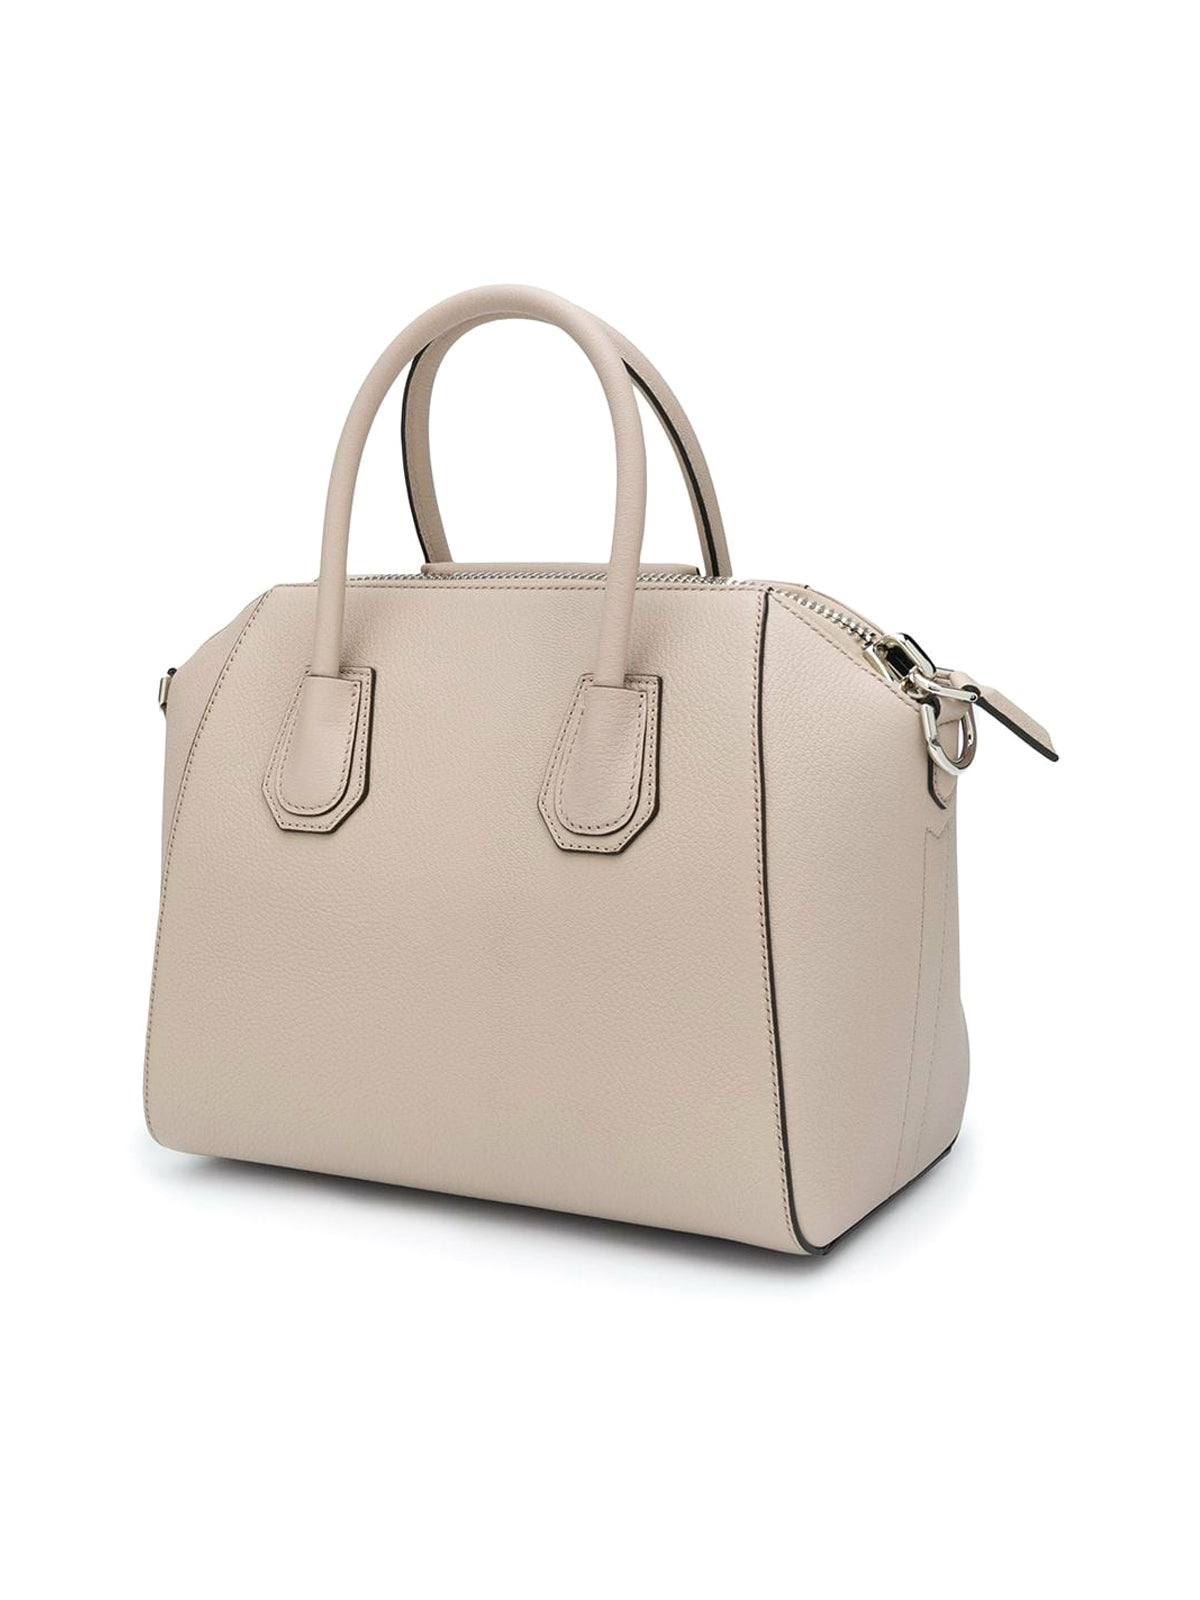 ANTIGONA SMALL LEATHER TOTE